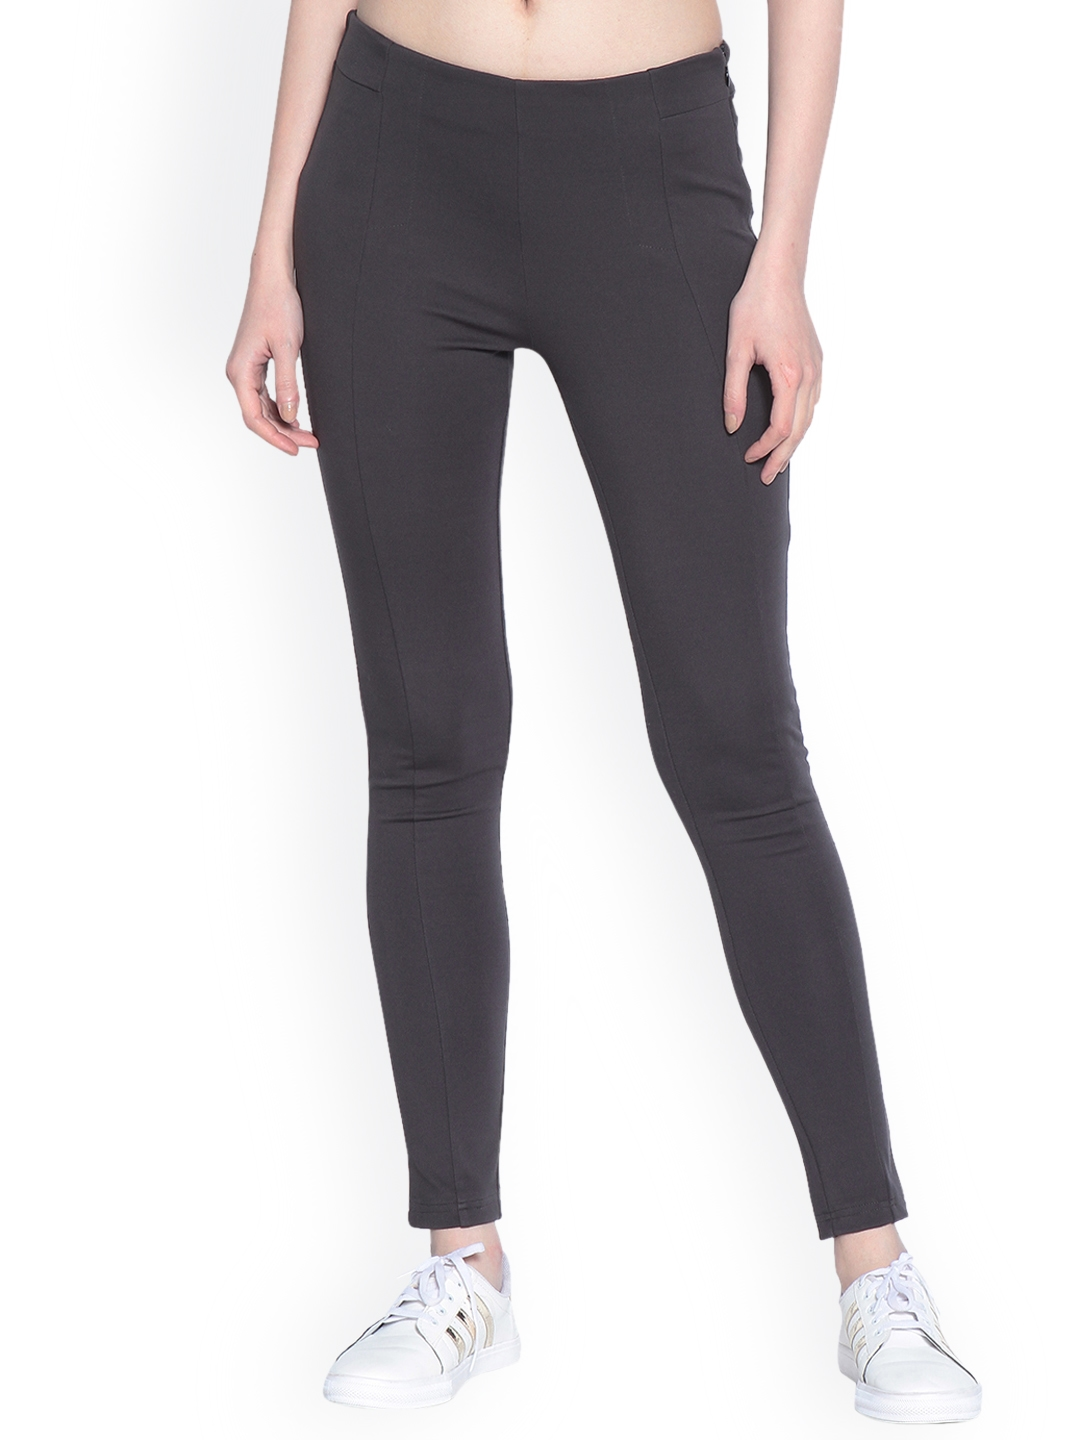 online retailer 50% off promotion Gipsy Charcoal Grey Jeggings